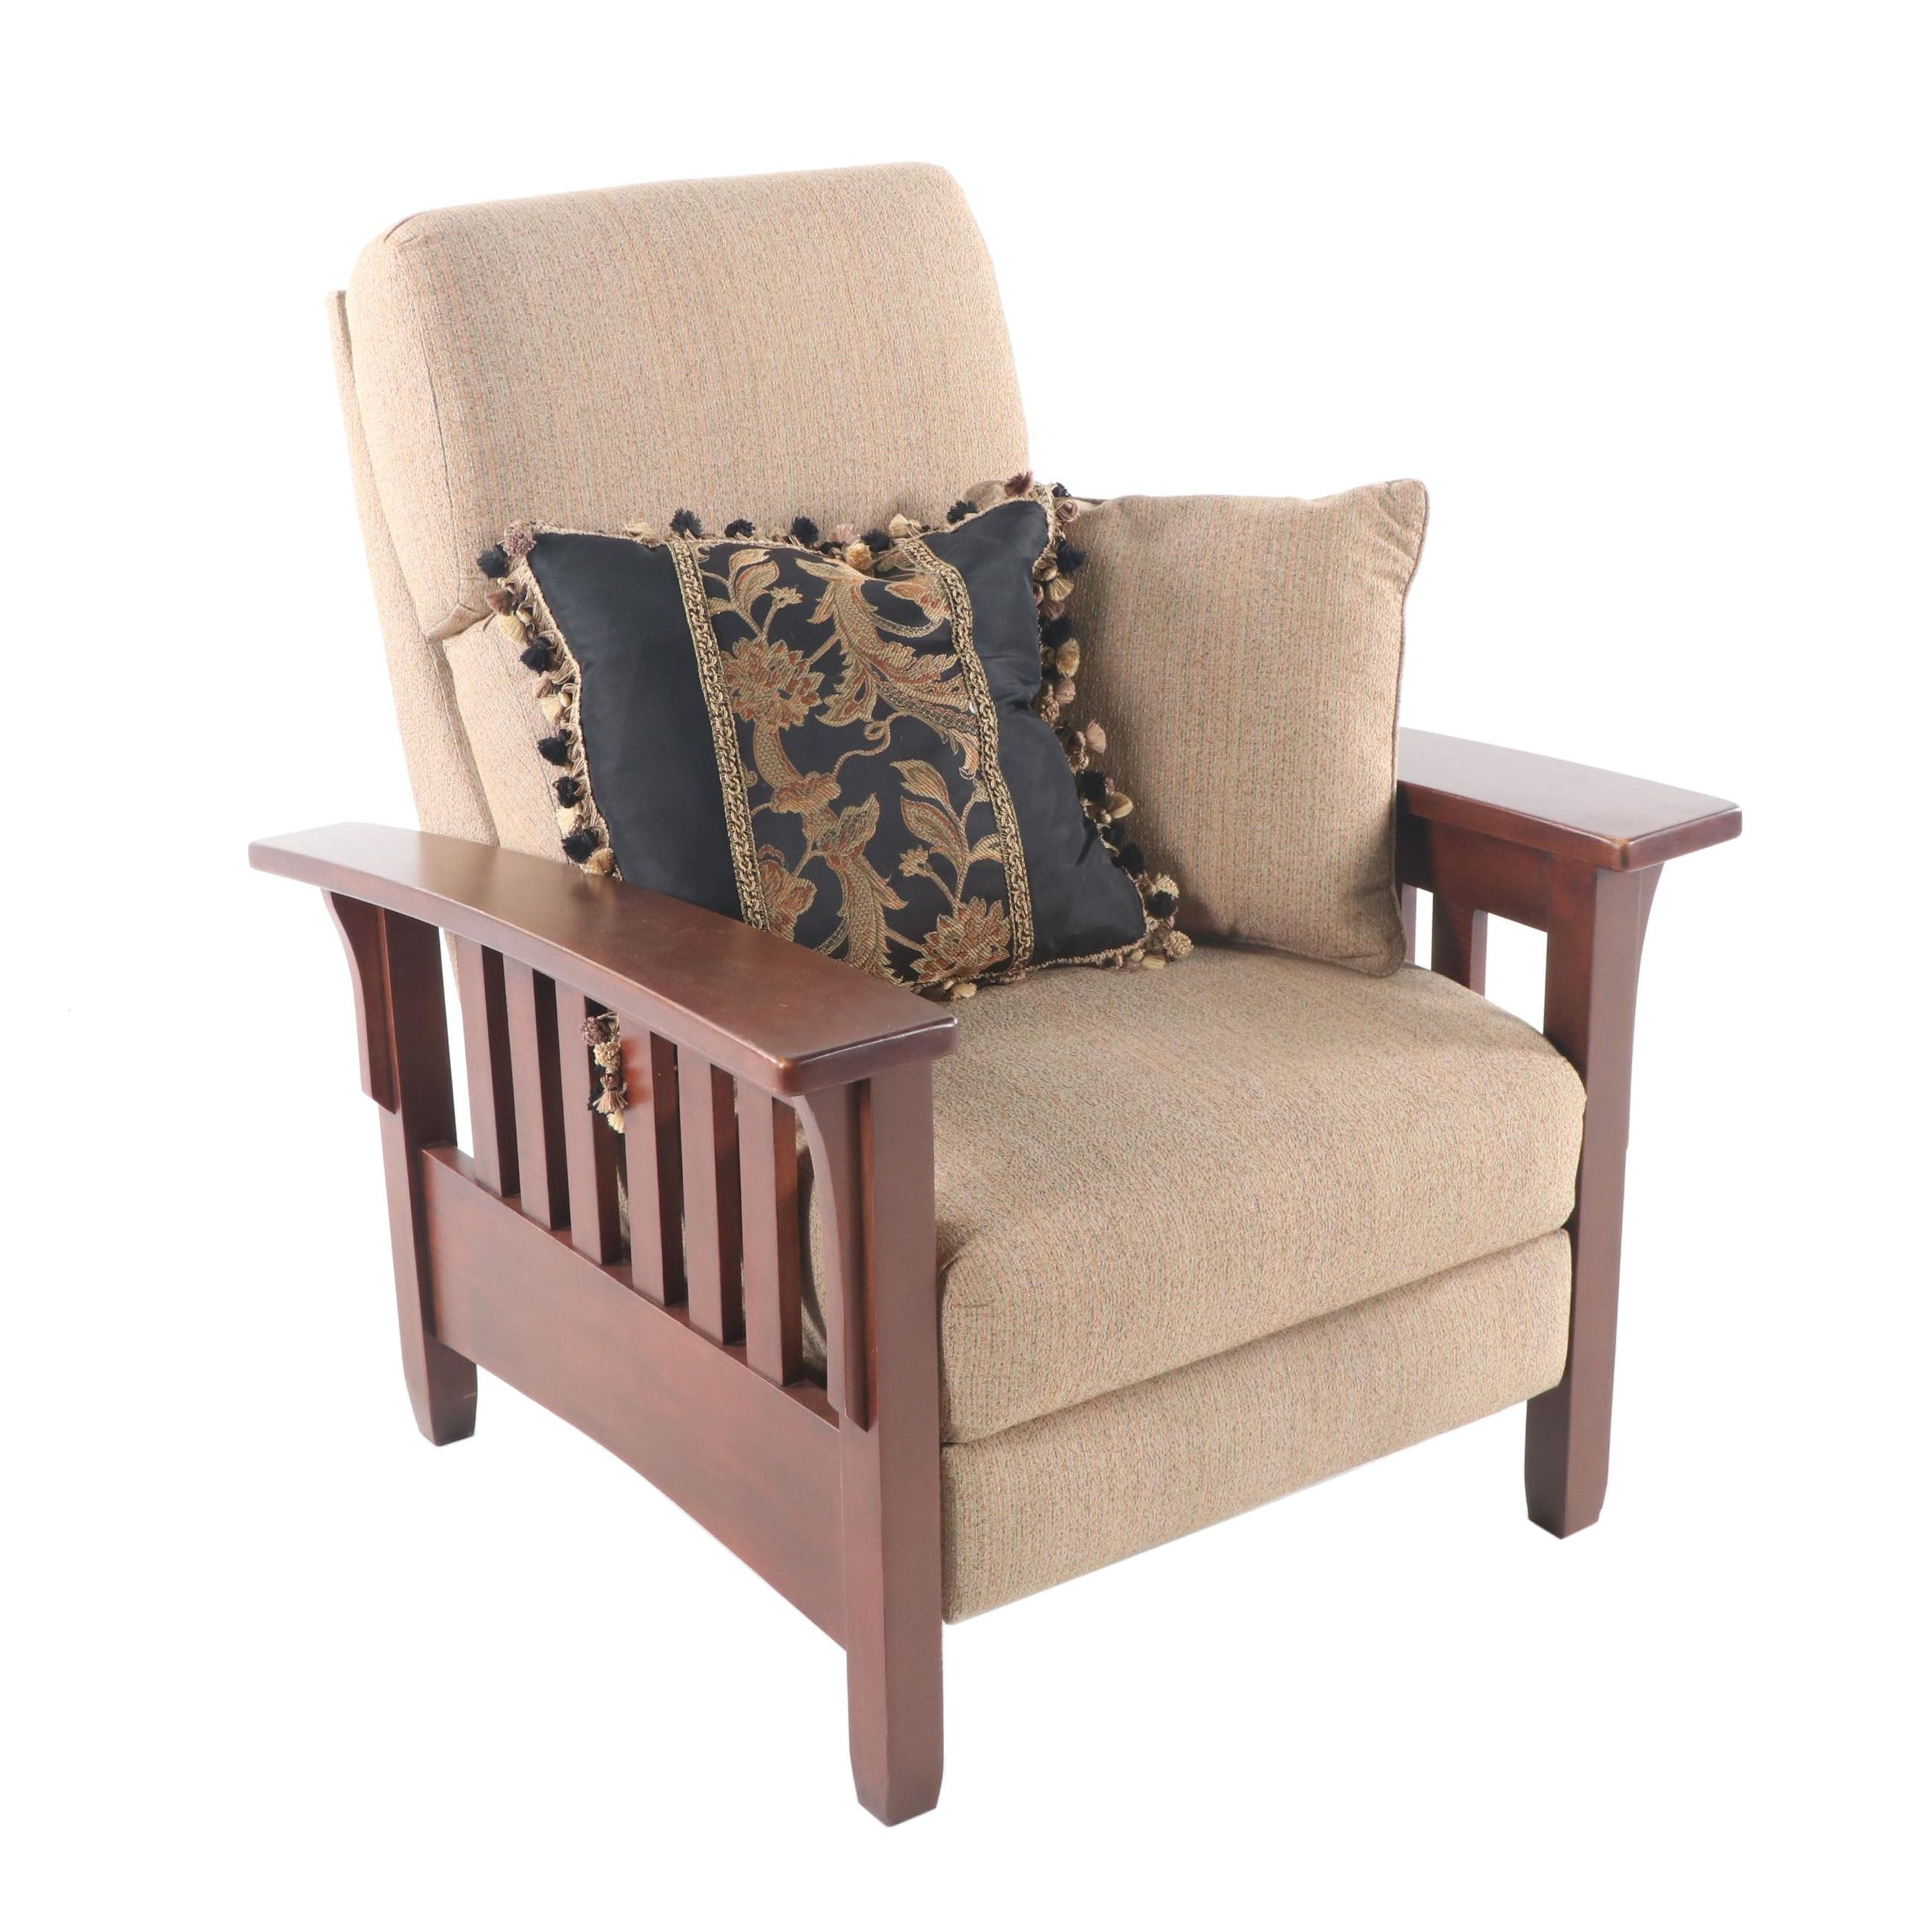 Mission Style Upholstered Armchair by Ethan Allen, 21st Century